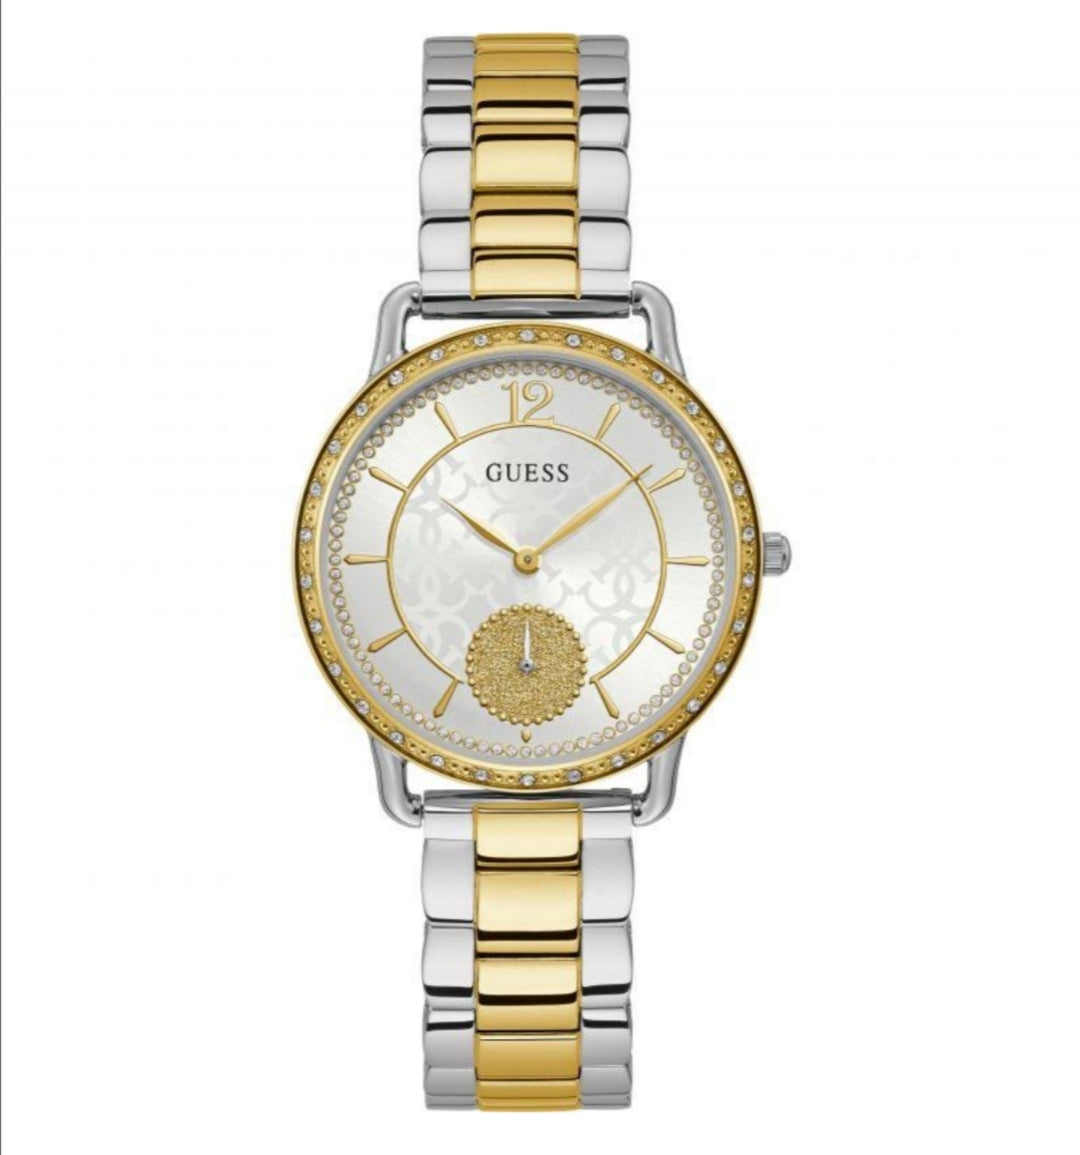 Guess ladies 2 tone watch